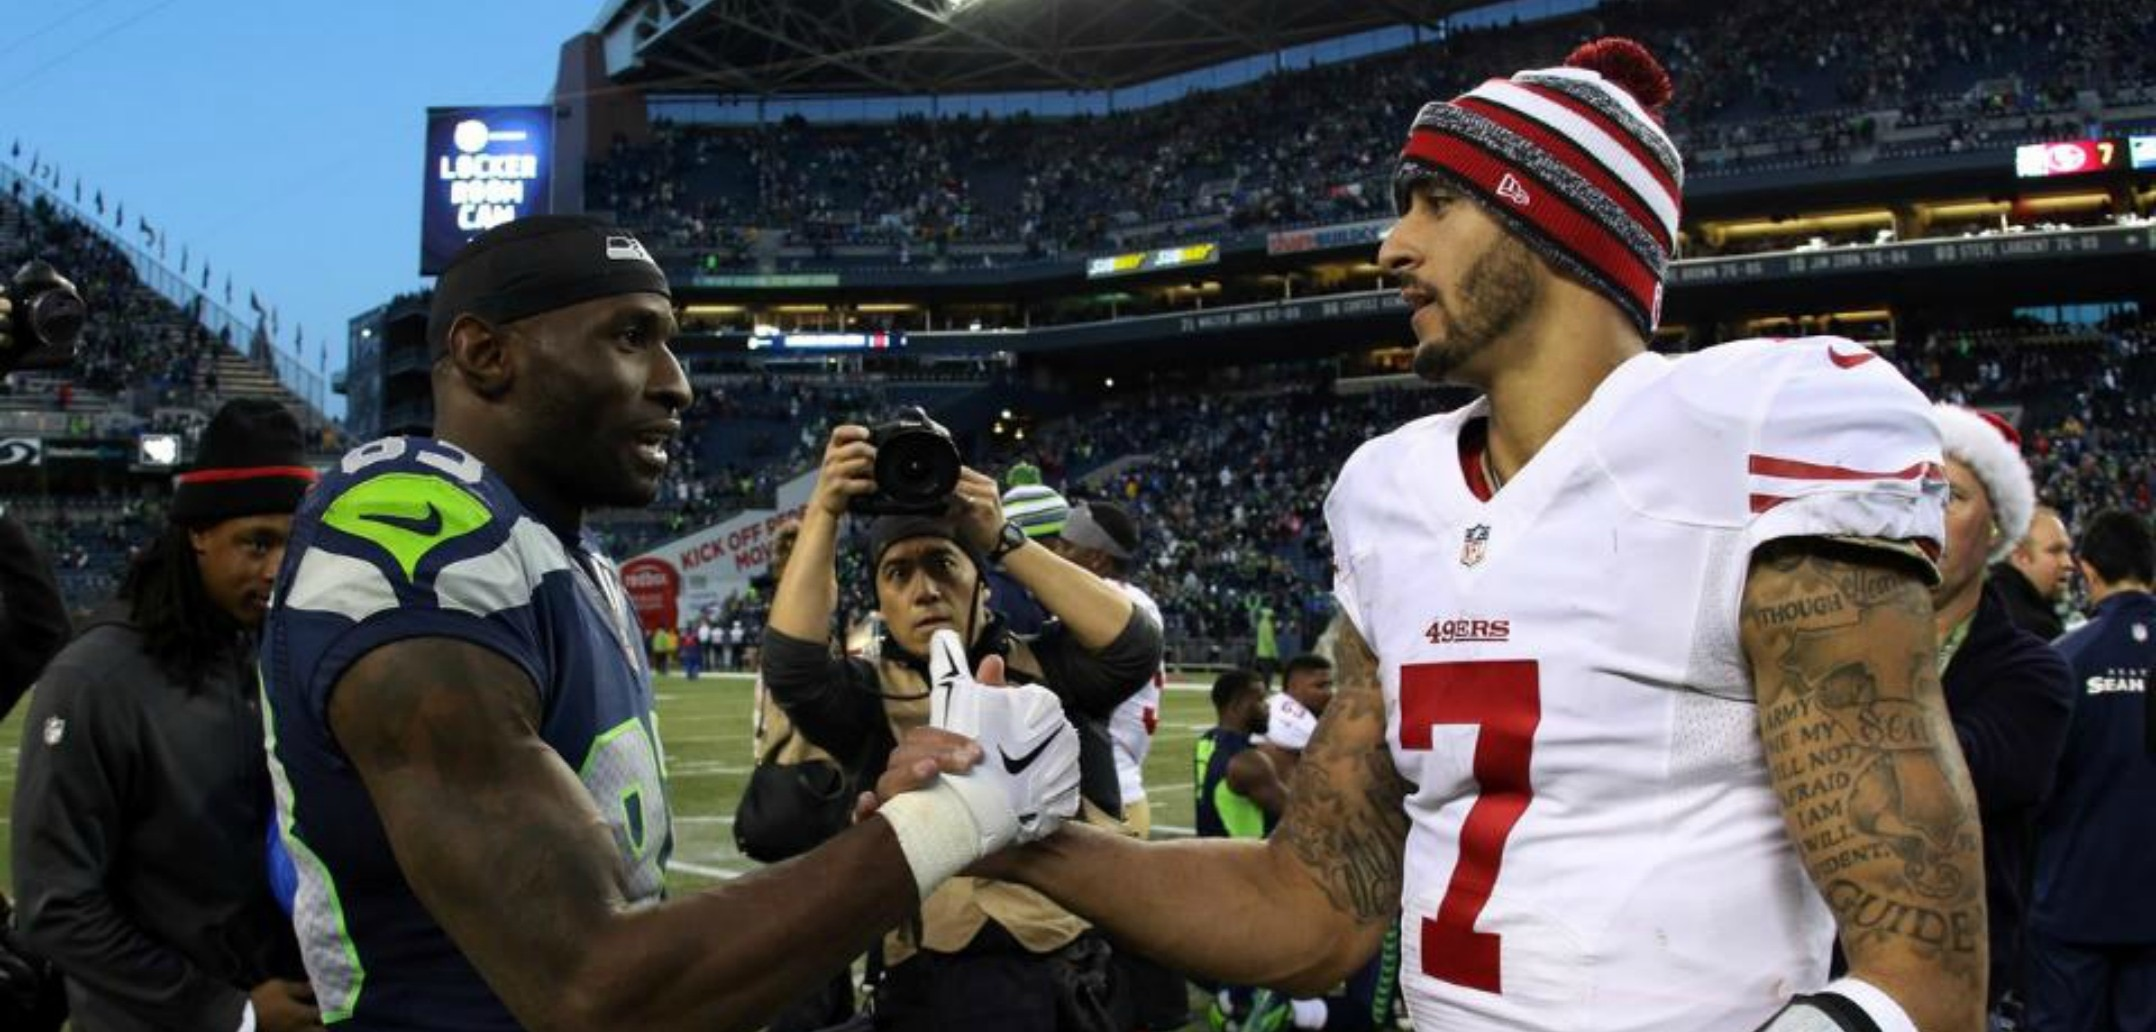 Courtesy of Seahawks.com: Colin Kaepernick and the 49ers now have an uncertain future ahead of themselves.